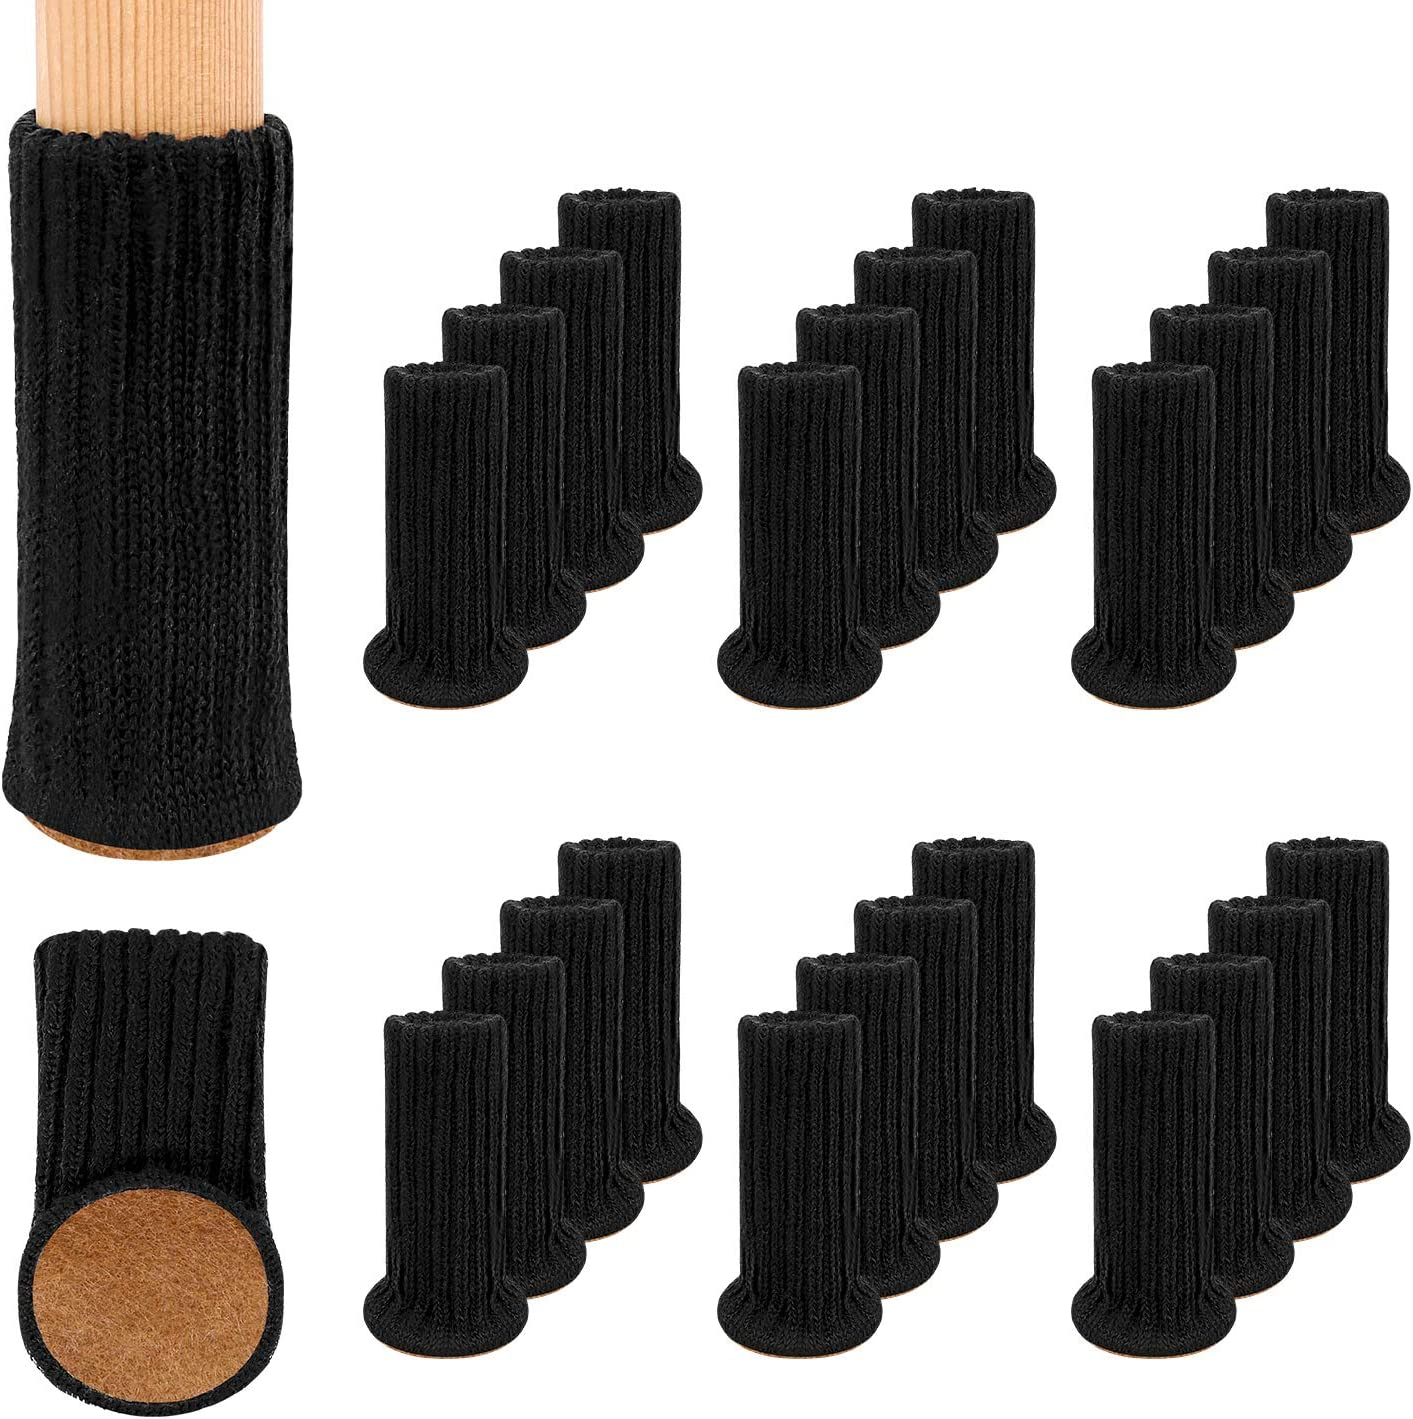 24Pack Furniture Leg Socks, High Elastic Knitted Chair Leg Floor Protectors, Fits All Shapes of Chair Legs with Diameter from 3/4 inch to 1-1/2 inch, Black